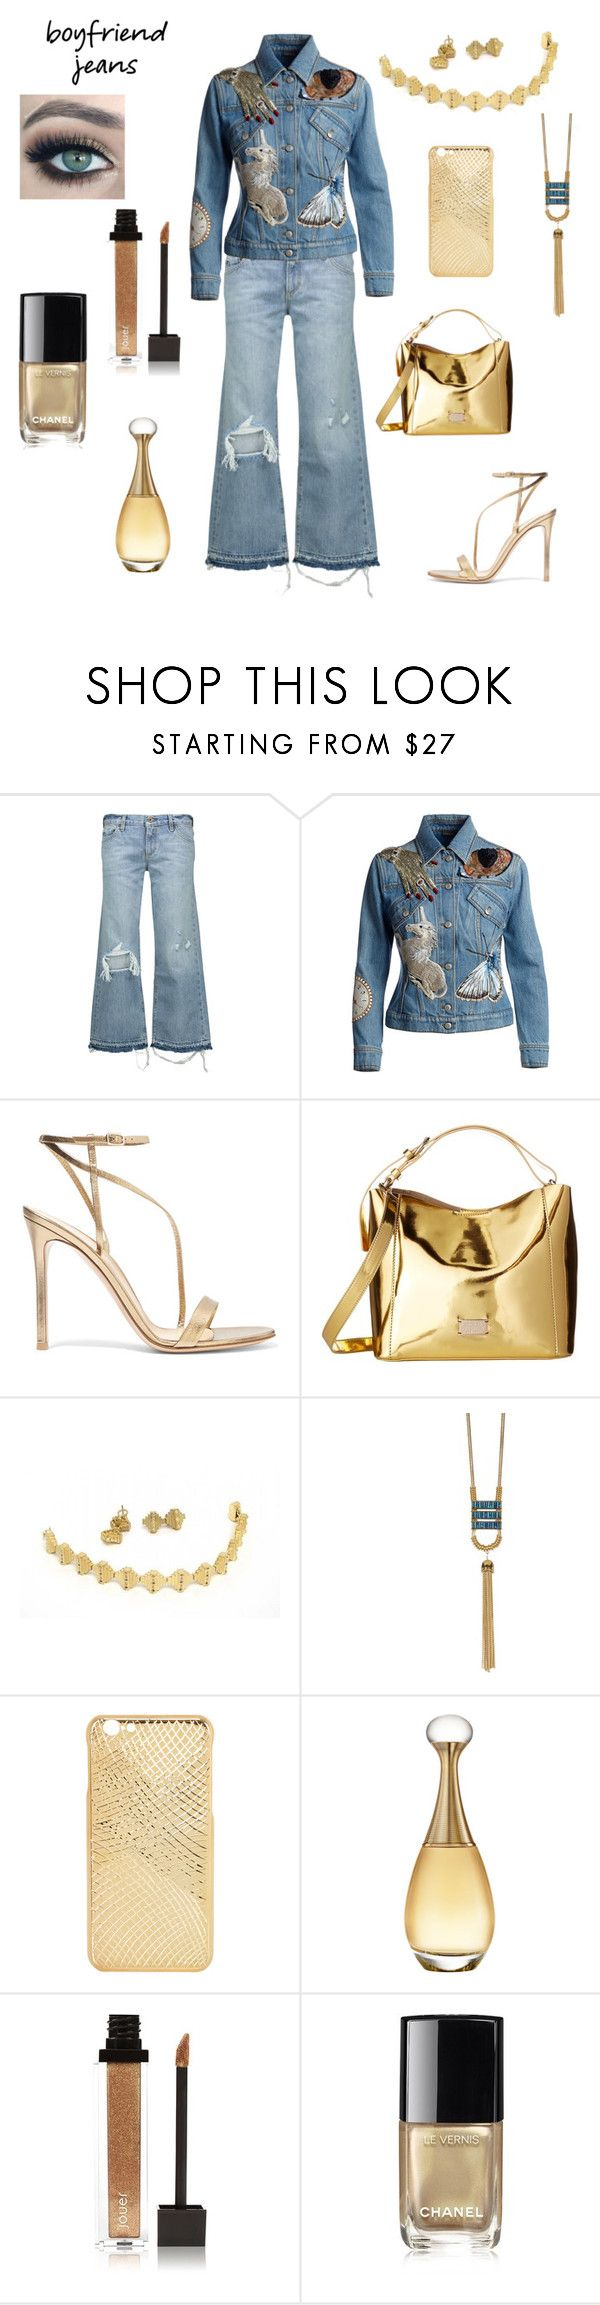 """""""Boyfriend Jeans...Denim n Gold"""" by gigiglow ❤ liked on Polyvore featuring Simon Miller, Alexander McQueen, Gianvito Rossi, Frances Valentine, Botkier, Christian Dior, Jouer and Chanel"""